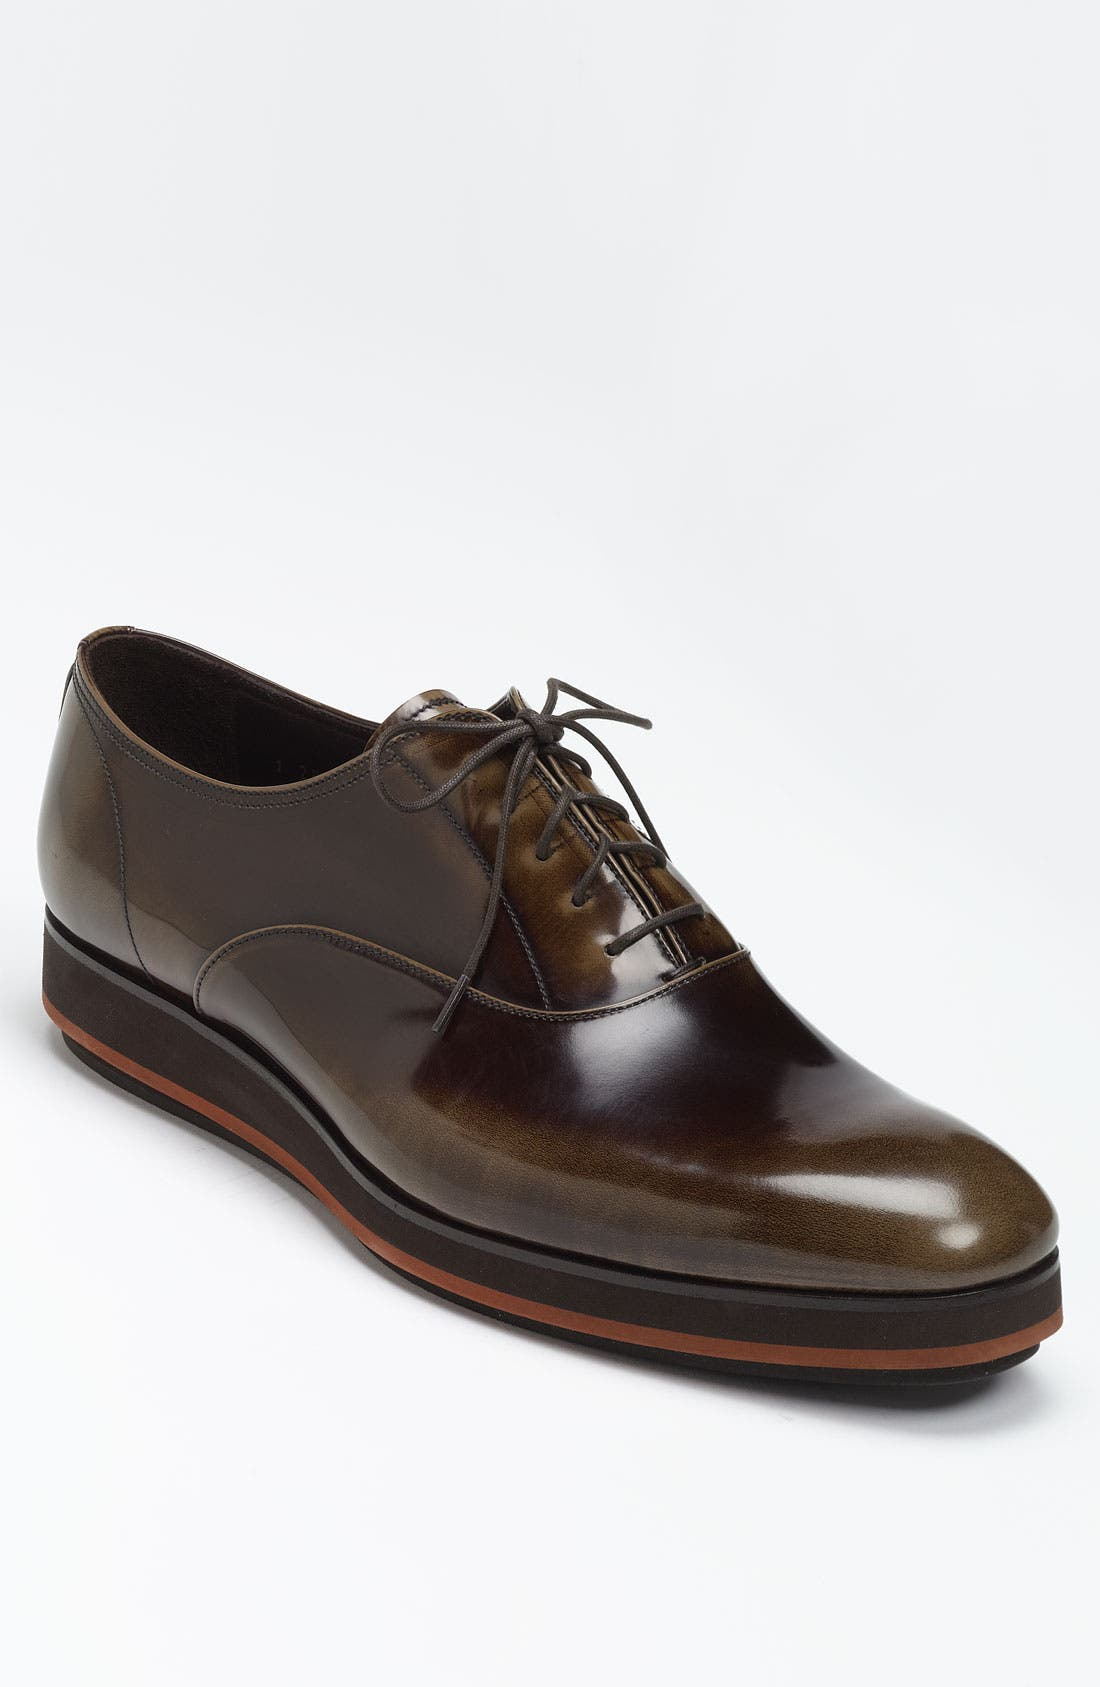 Alternate Image 1 Selected - Prada Double Sole Oxford